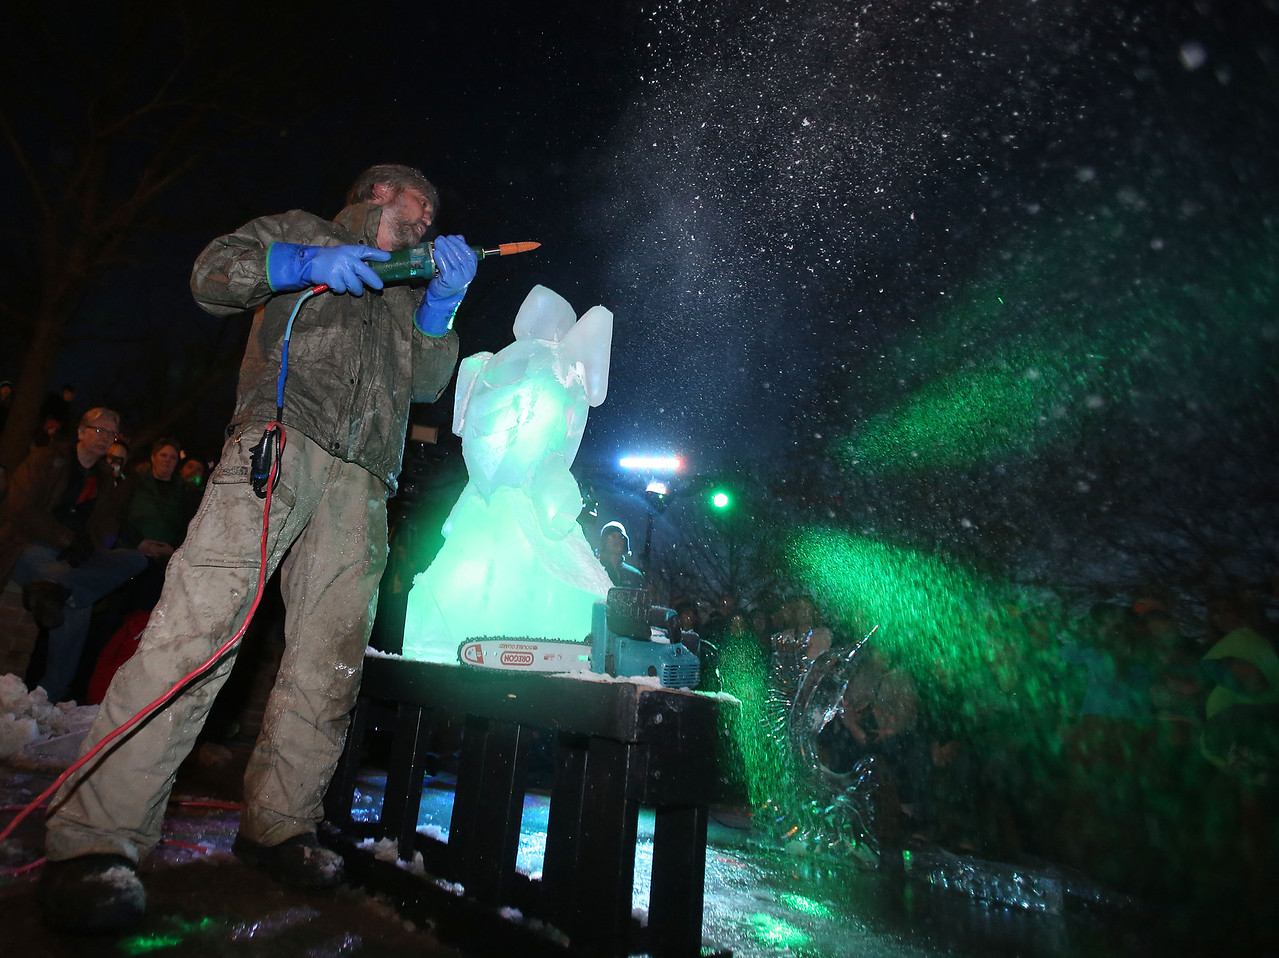 AARON JOSEFCZYK / GAZETTE  Jim Duggan of Atlanta works on an ice sculpture that was judged a winner in a competition held Friday on Medina Public Square during the first day of the 23rd Medina Ice Festival.